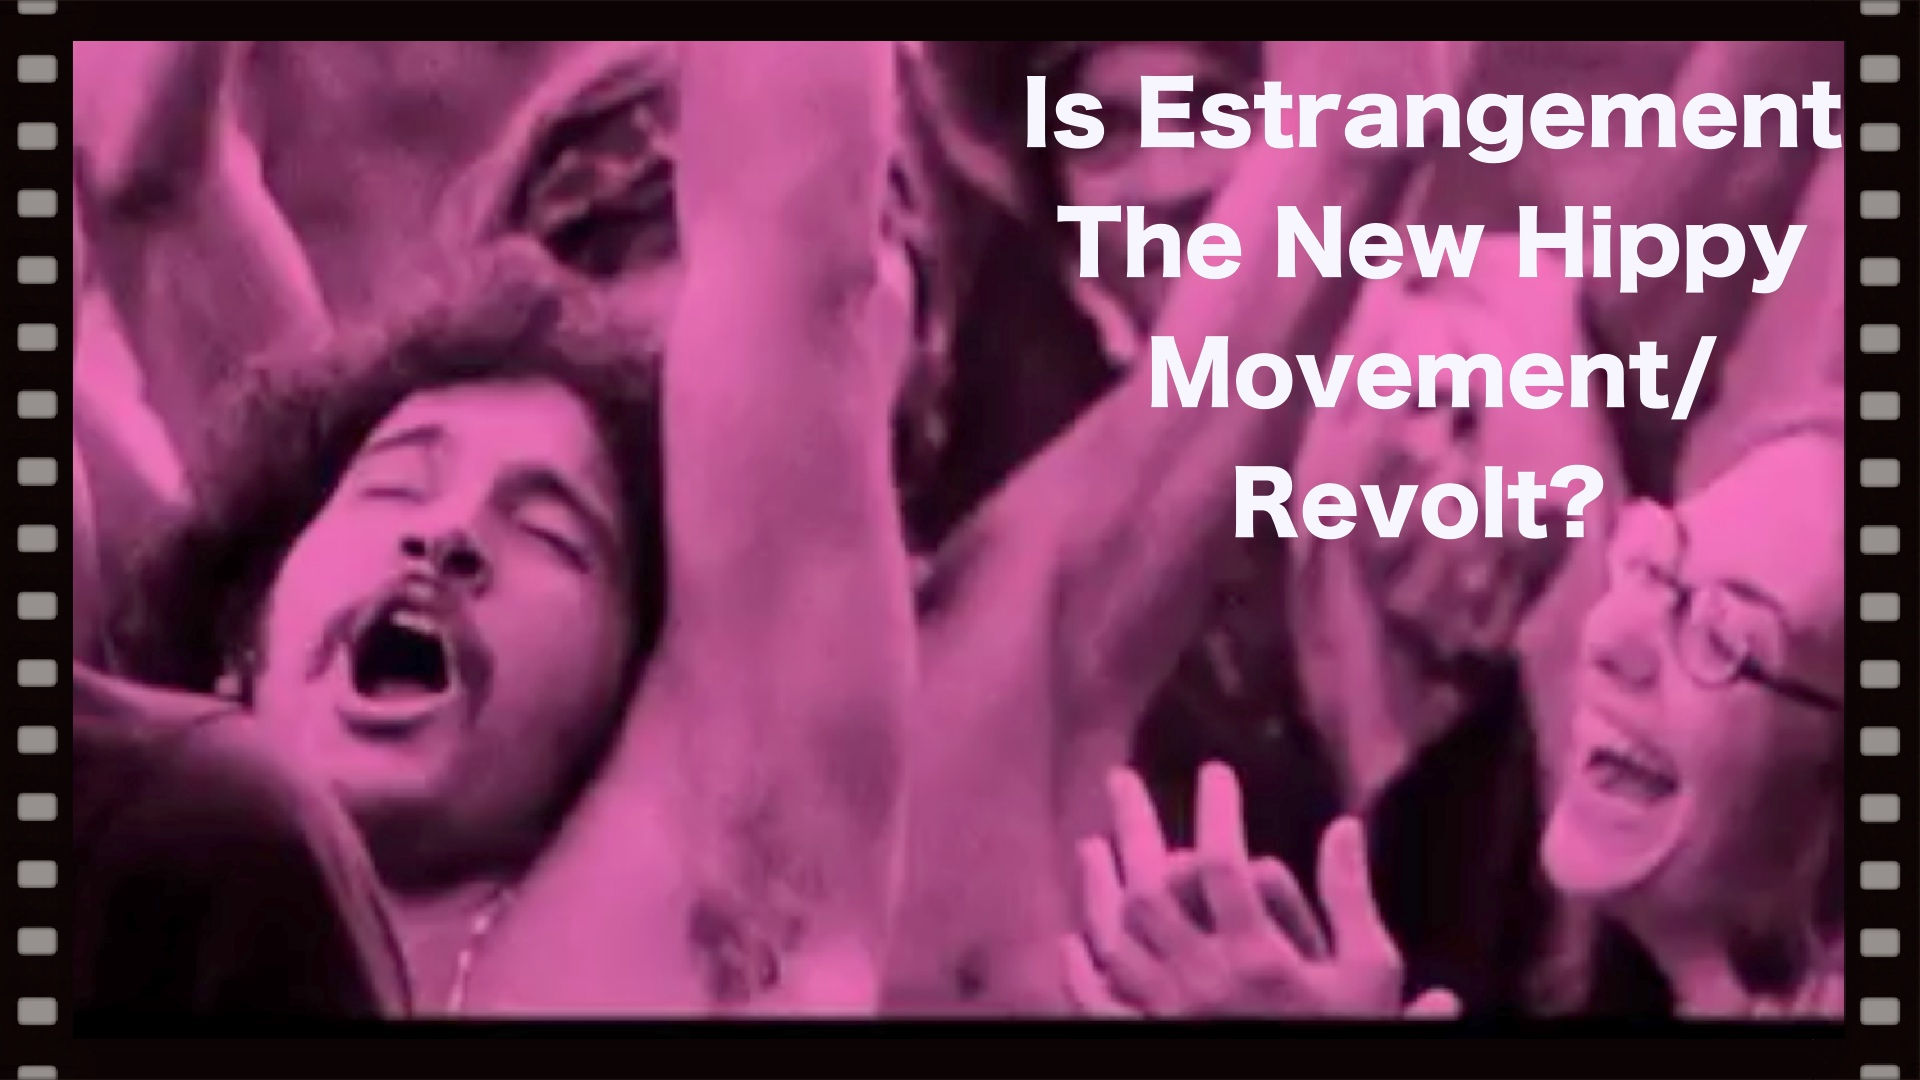 To show that estrangement is the new Hippy Movement against authoritarianism but, backed by the authorities and Society.